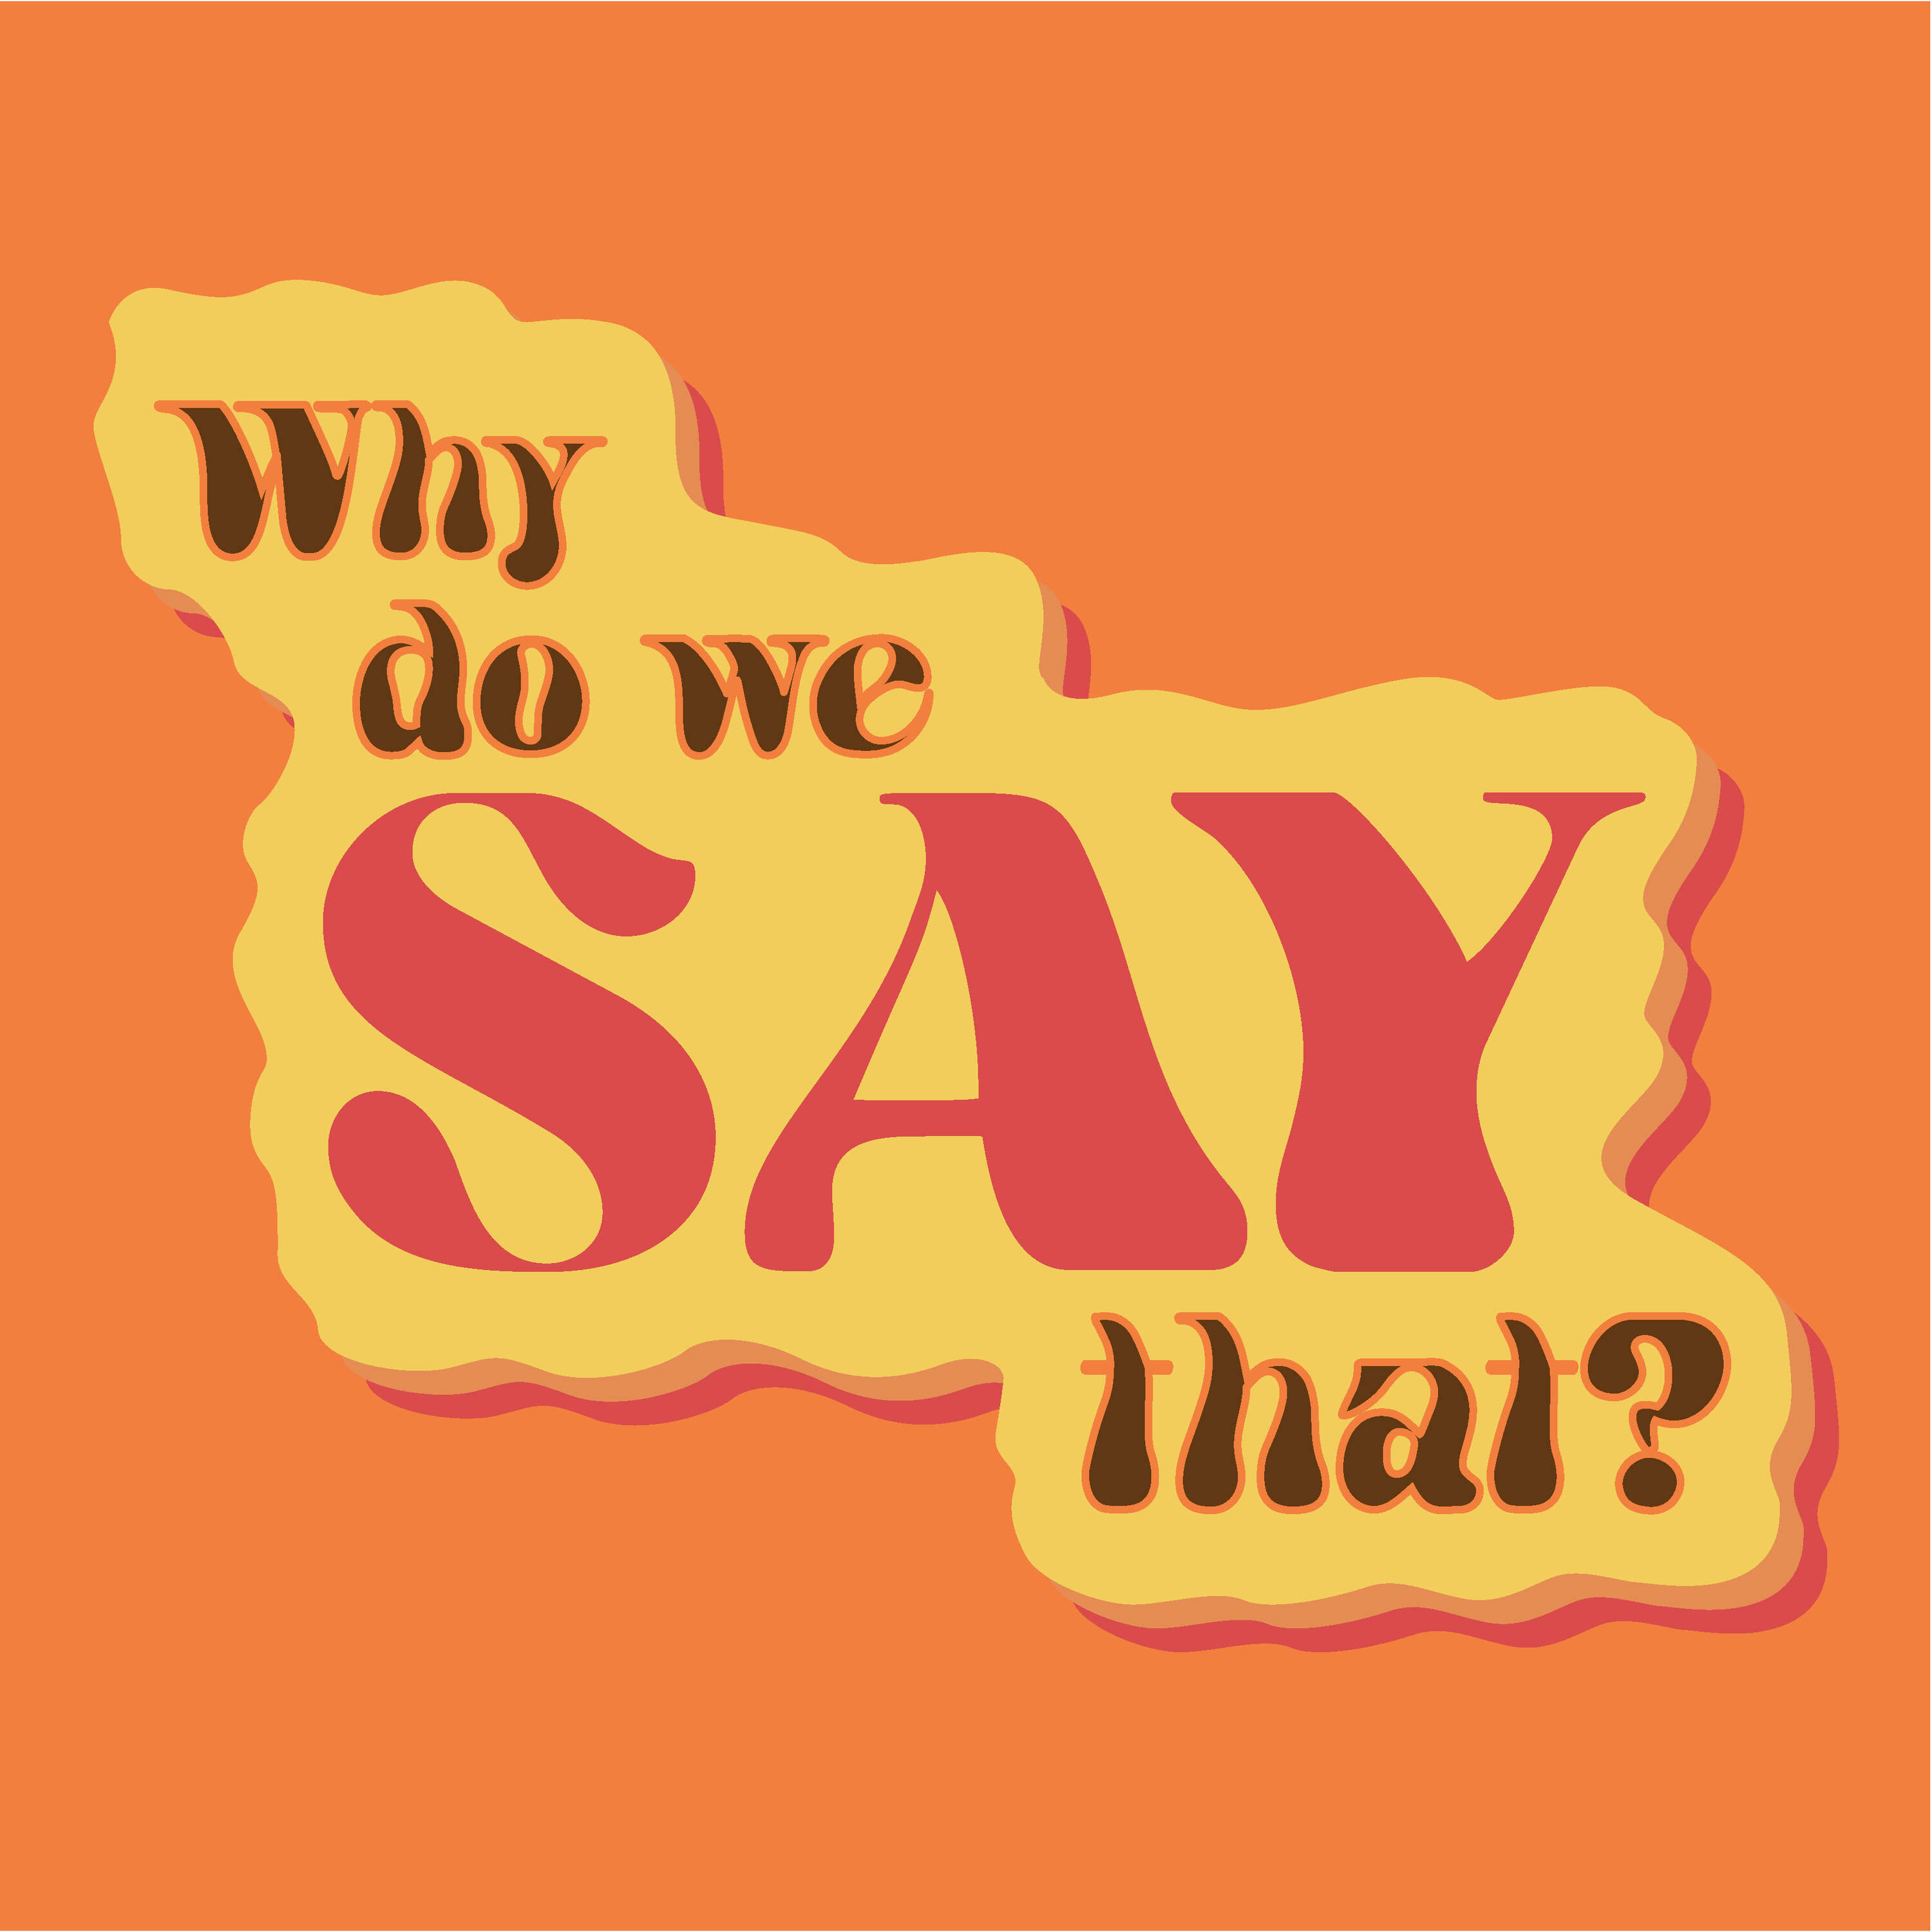 Why Do We Say That?